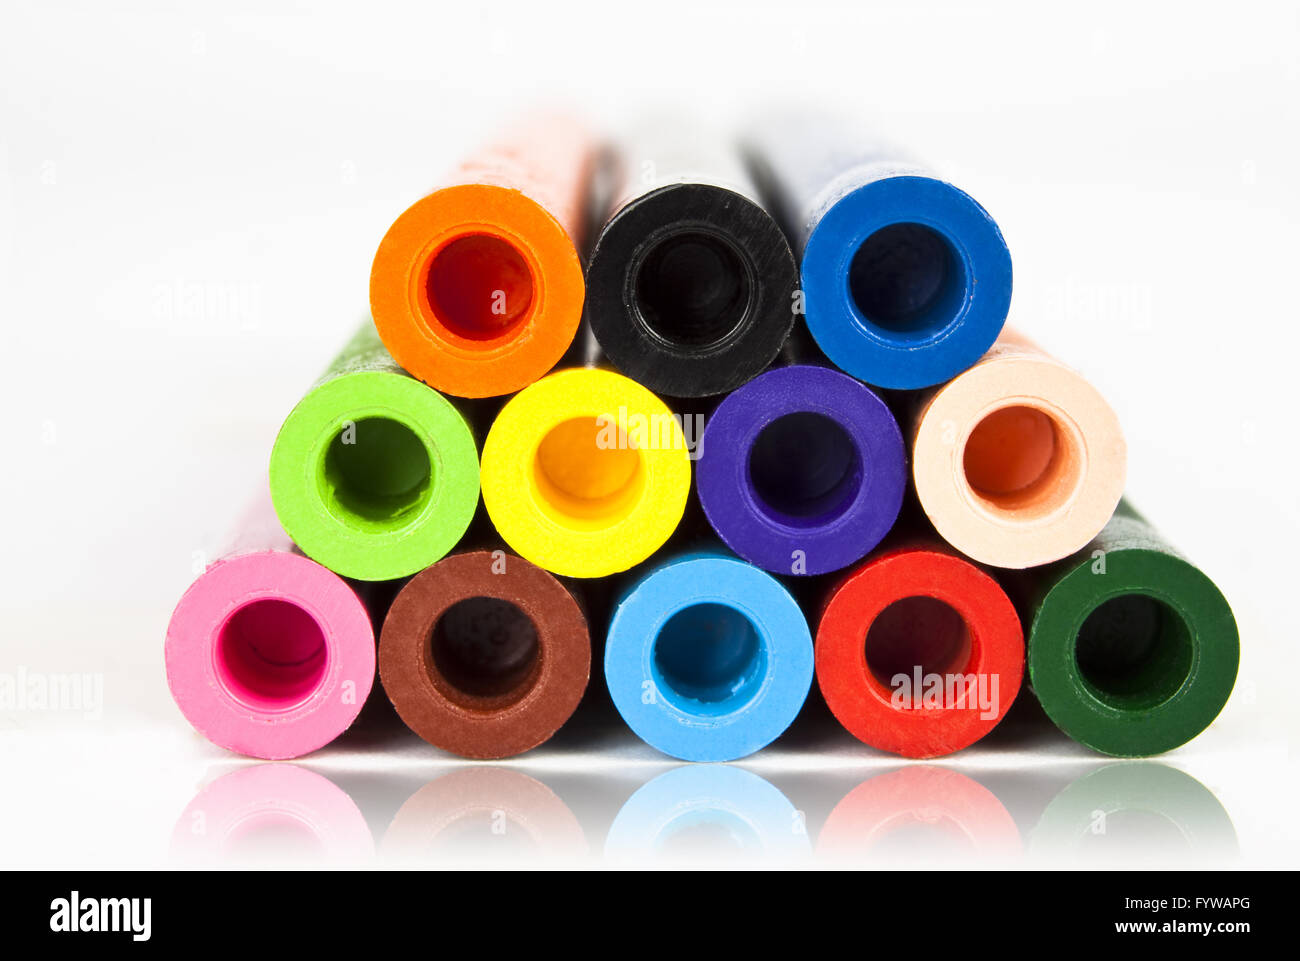 colors - Stock Image